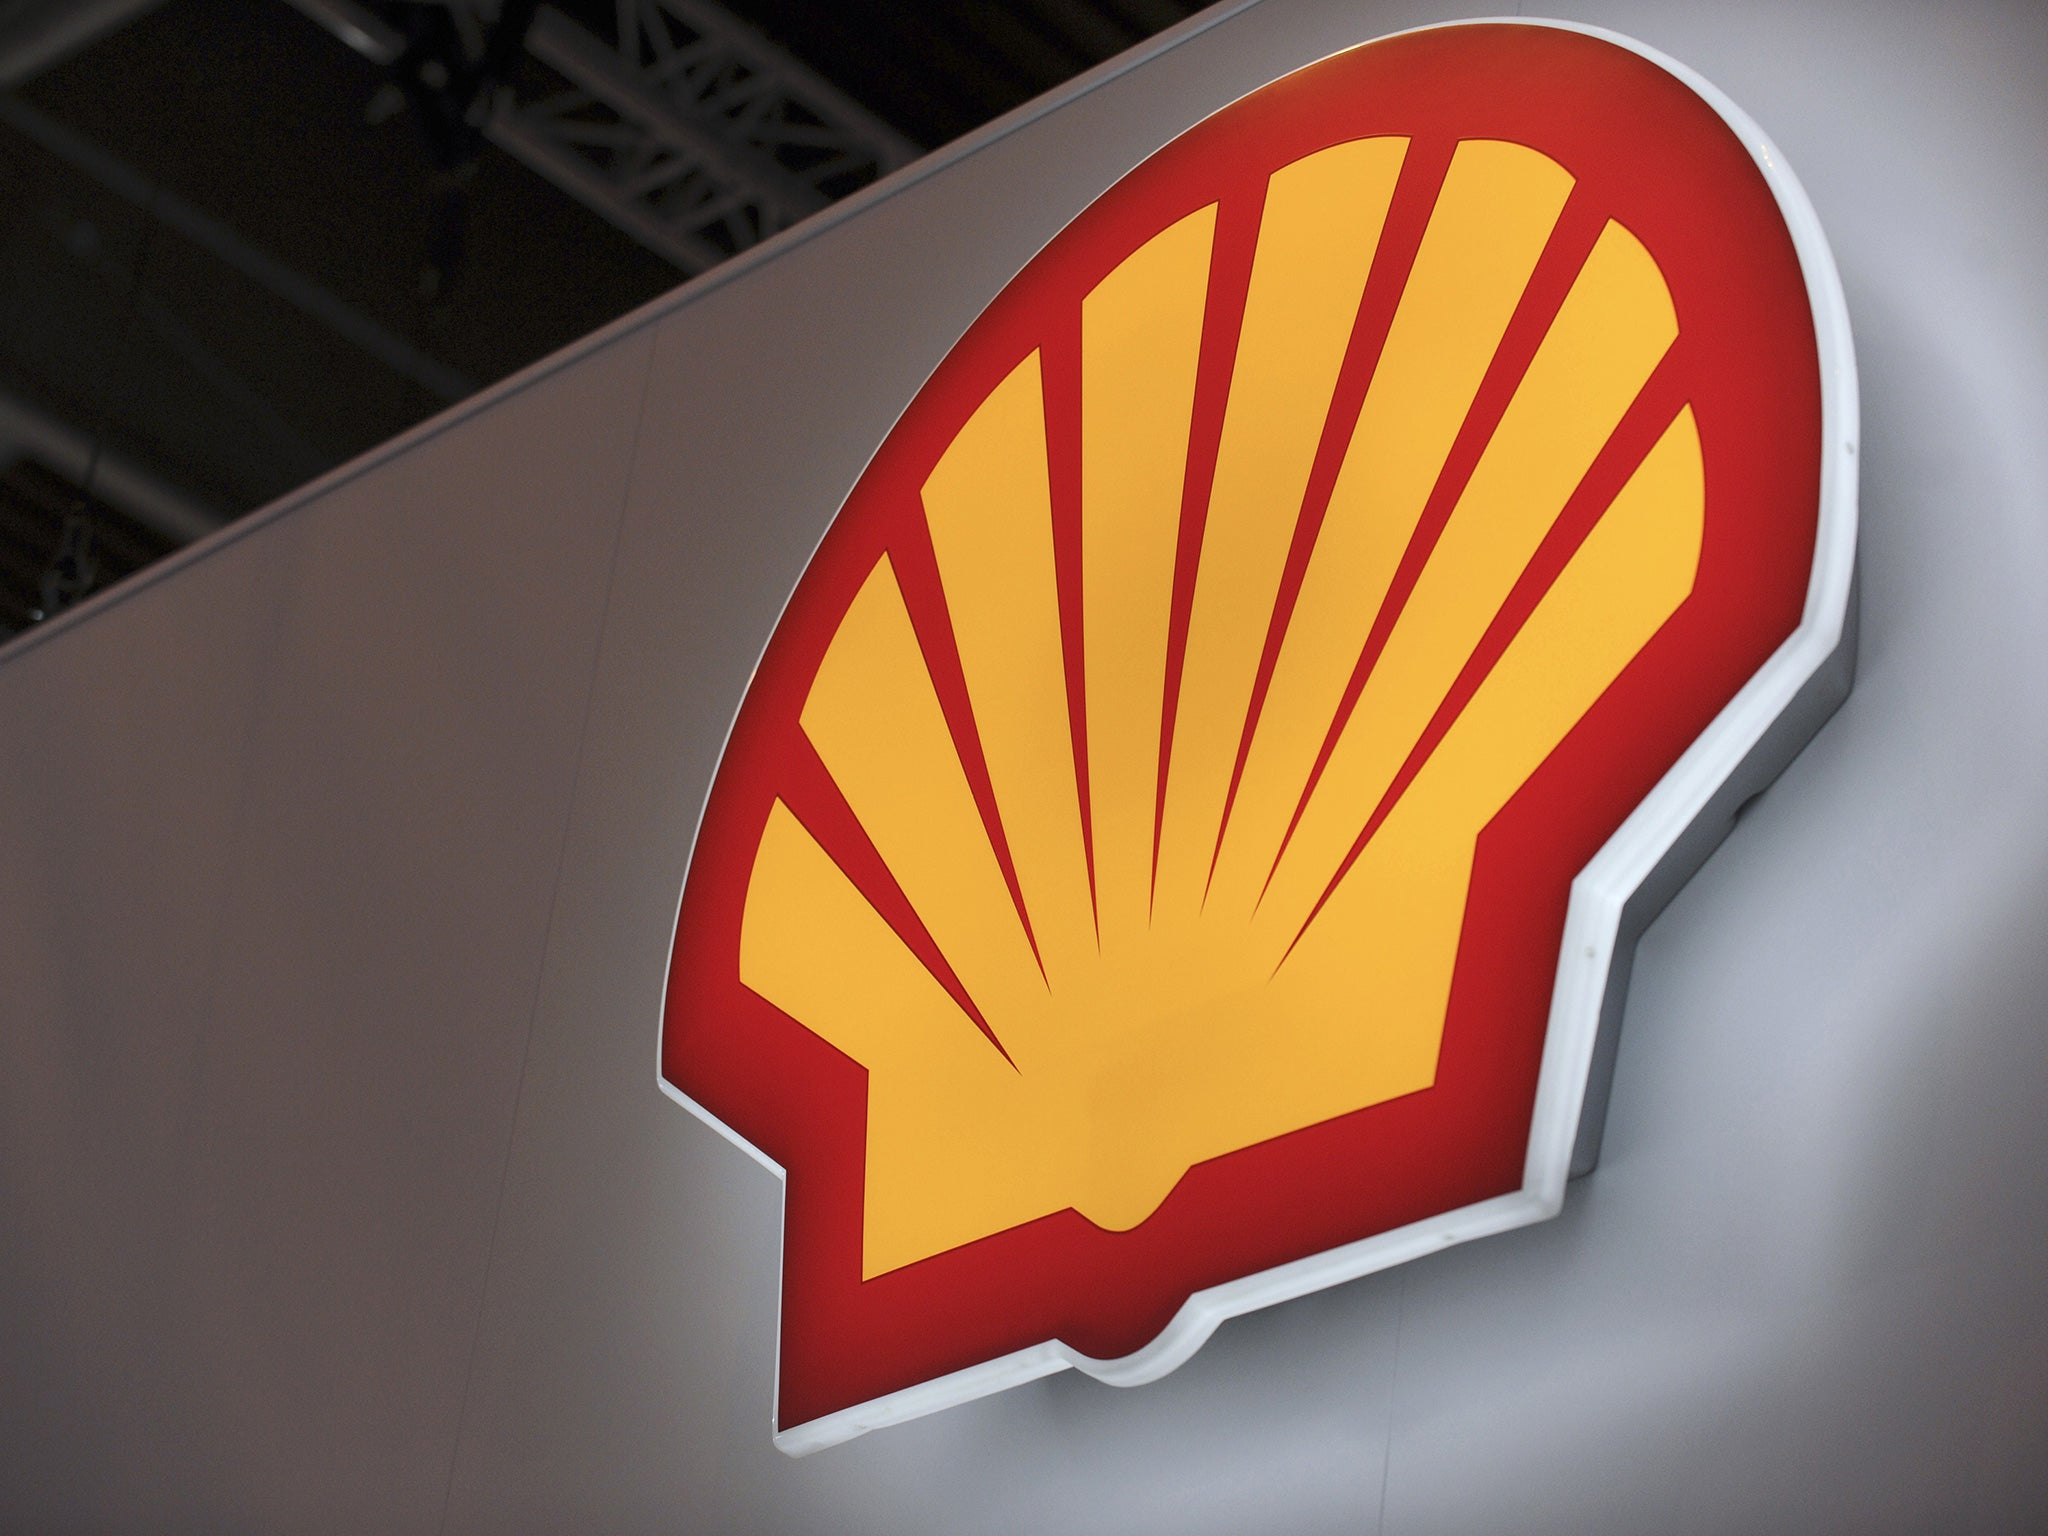 royal dutch shell Dr philip mshelbila aligning with nigeria's energy strategy for the future, general electric power services business, has announced that it has signed a multi-year service agreement with shell | février 27, 2018.